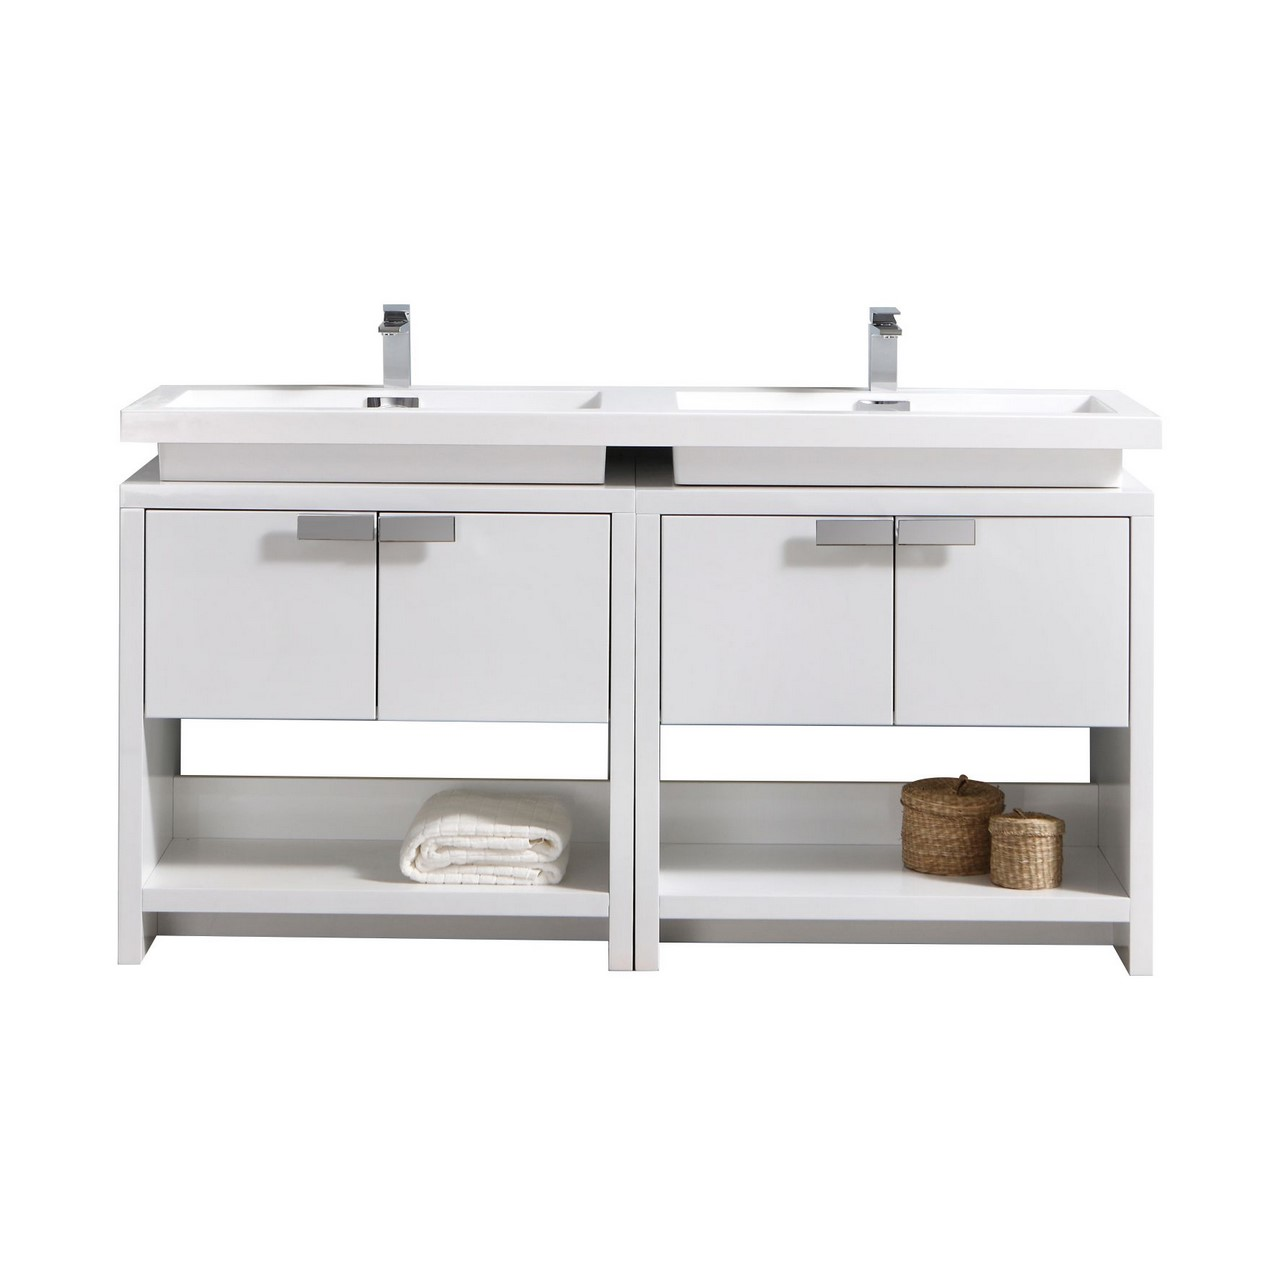 "Modern Lux 63"" High Gloss White Modern Bathroom Vanity w/ Cubby Hole"